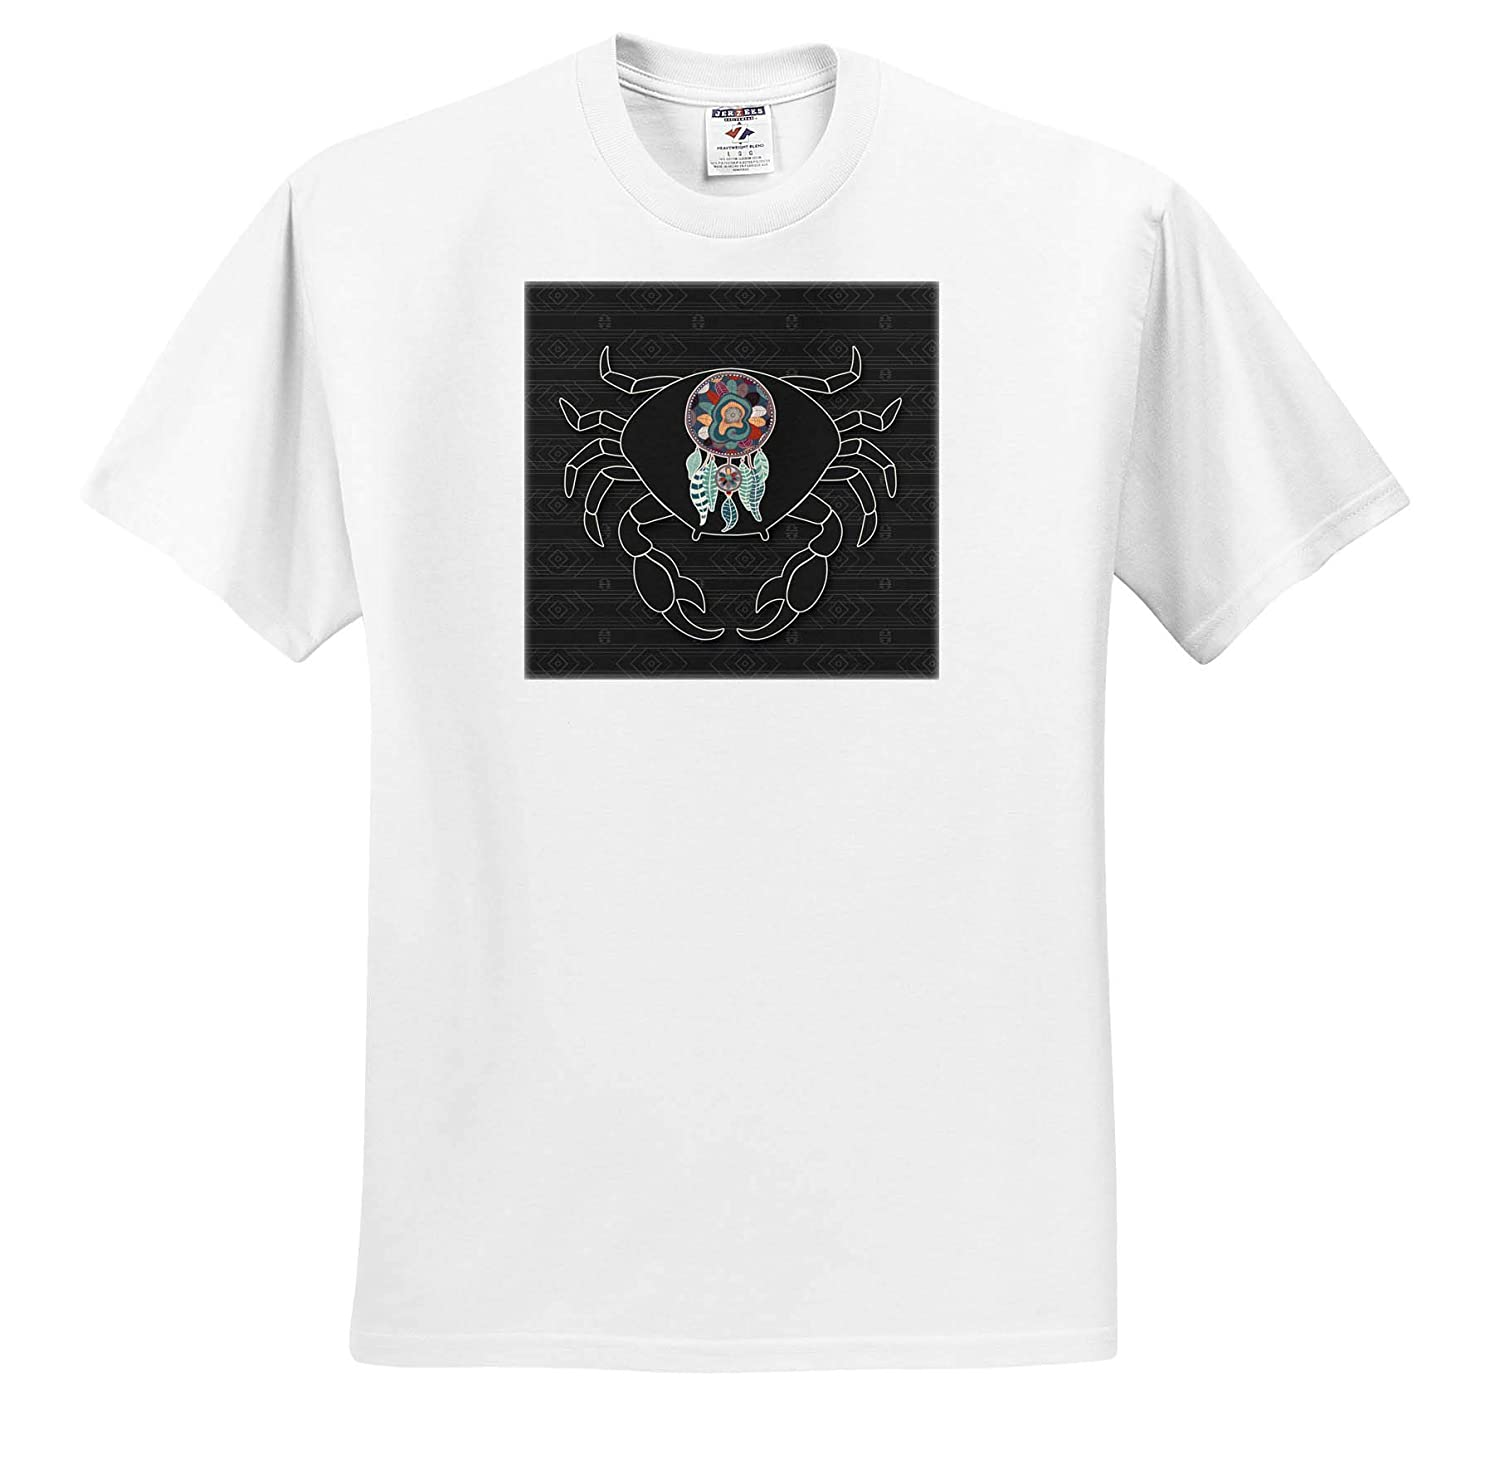 3dRose Doreen Erhardt Native American Trendy Crab Illustration with Native American Tribal Pattern and Theme T-Shirts